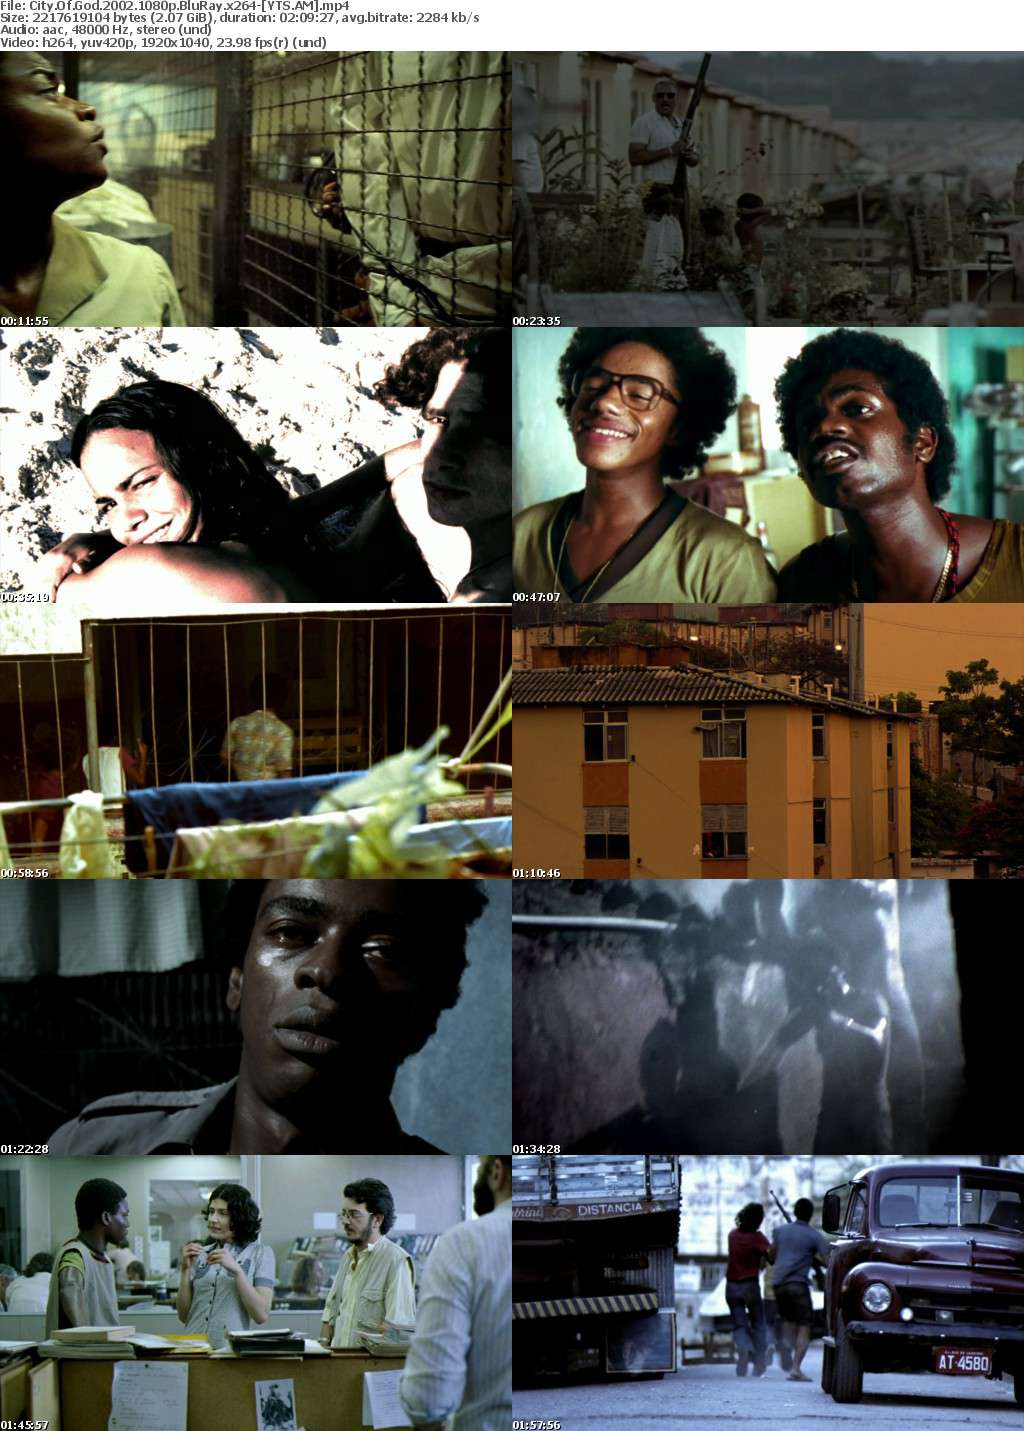 city of god 2002 represents violence and City of god was screened at the 2002 cannes film festival the scenery is gritty and yet evocative of a cultural heritage somewhat trampled and yet thriving through the constant theme of violence and cyclical gang warfare we have a huge host of characters, but each of them is memorable and complex.